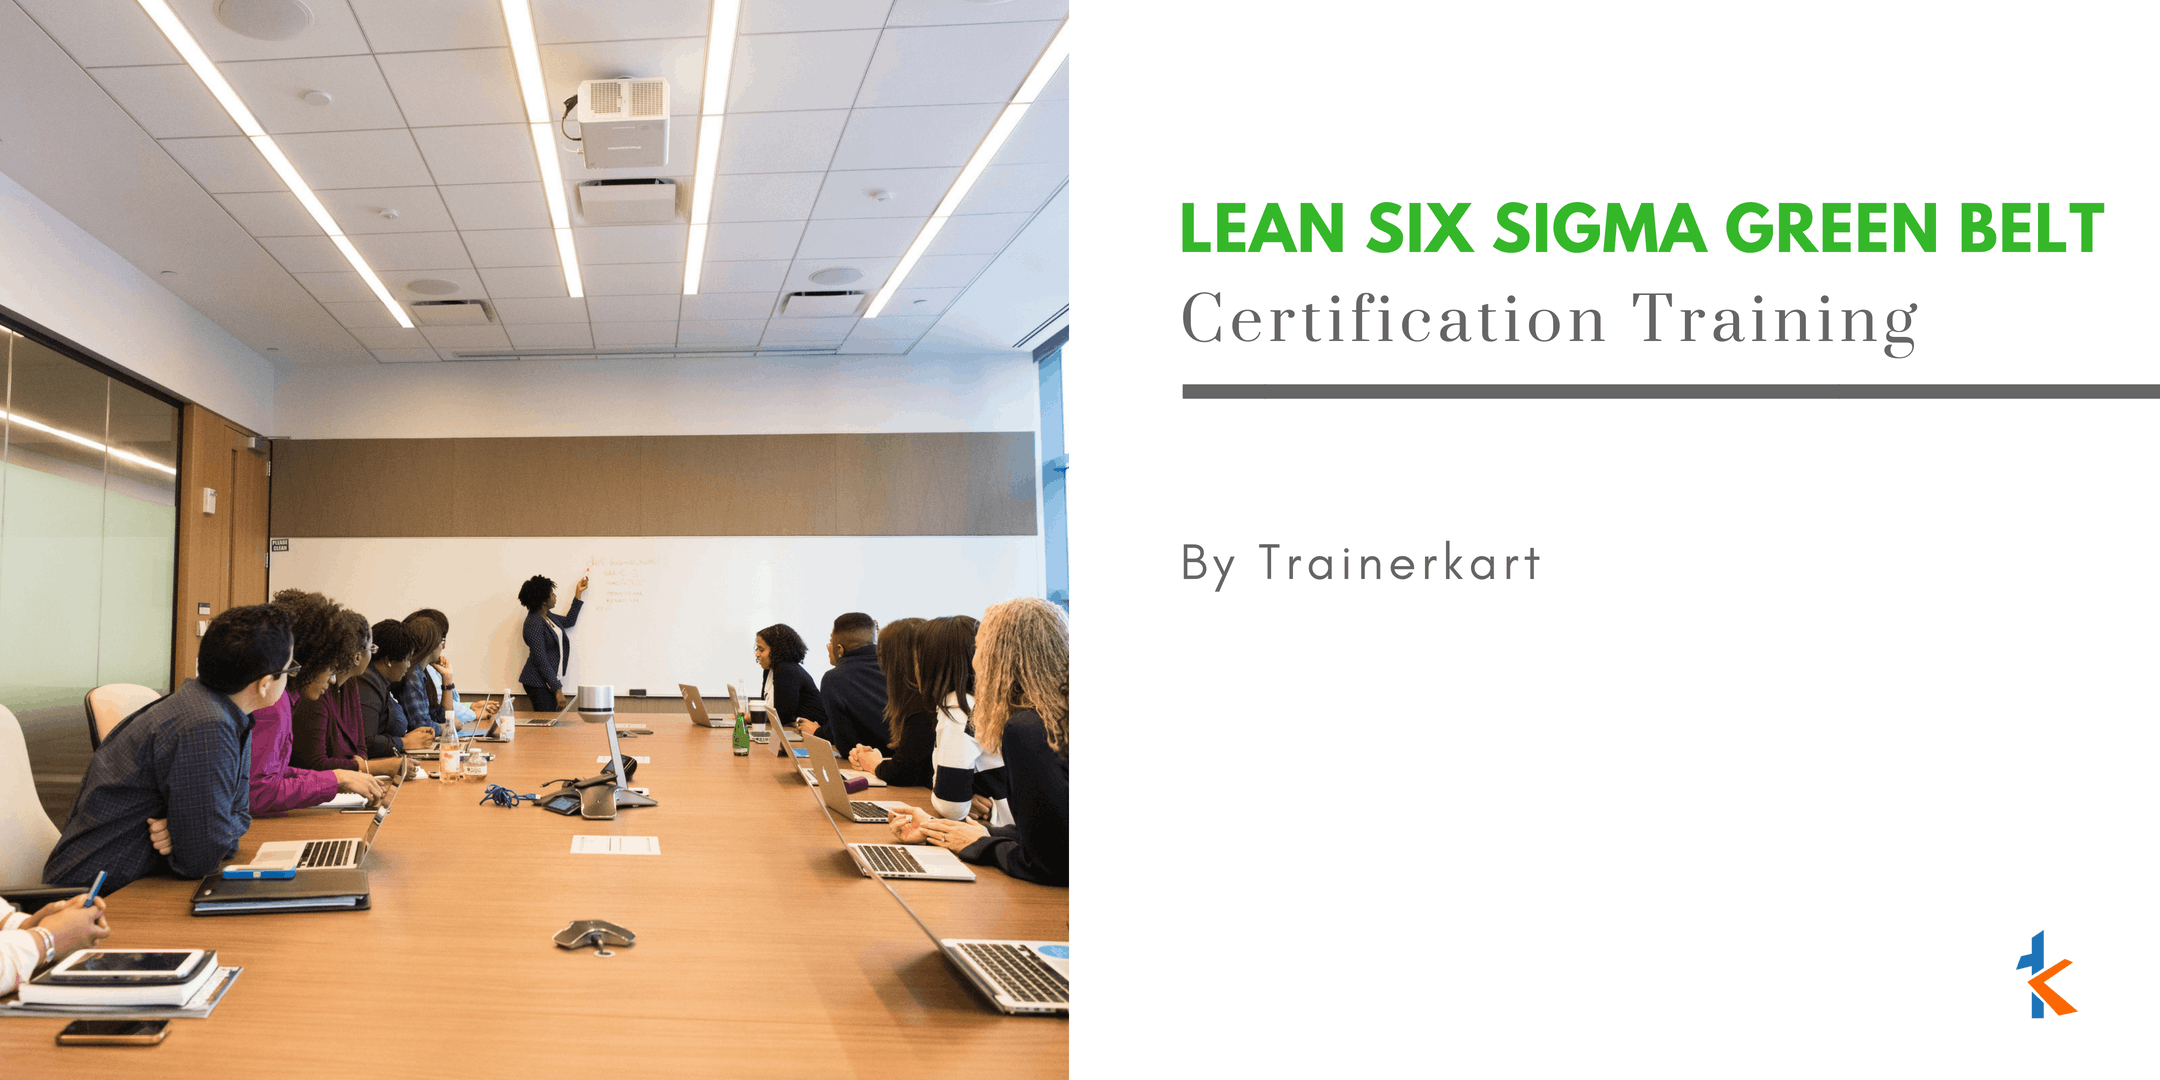 Lean Six Sigma Green Belt Training In Raleigh Nc 28 Aug 2018